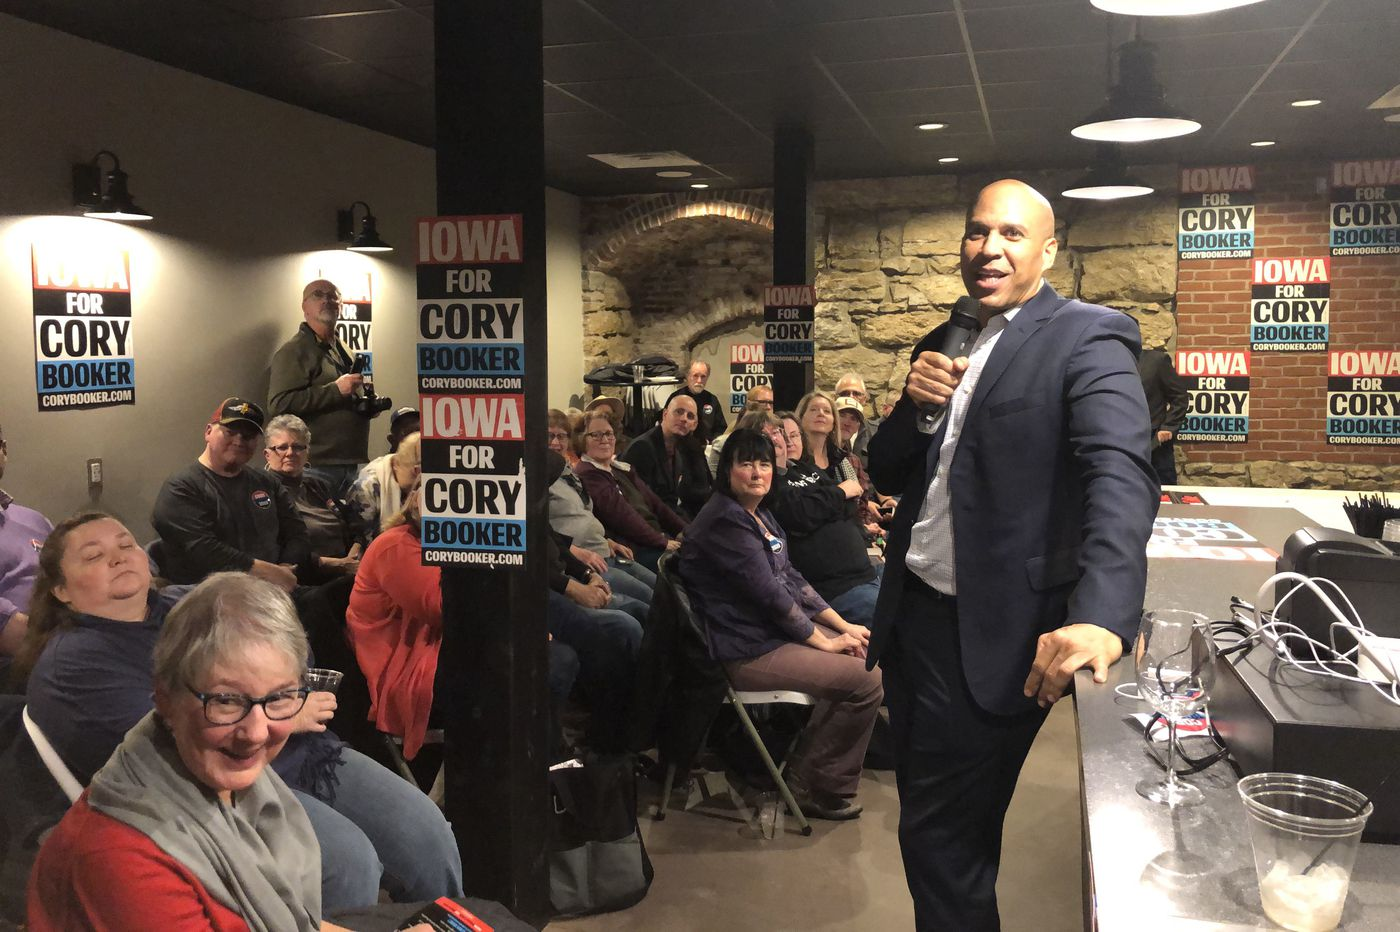 Cory Booker probably won't qualify for the next presidential debate. But he says he's not quitting.